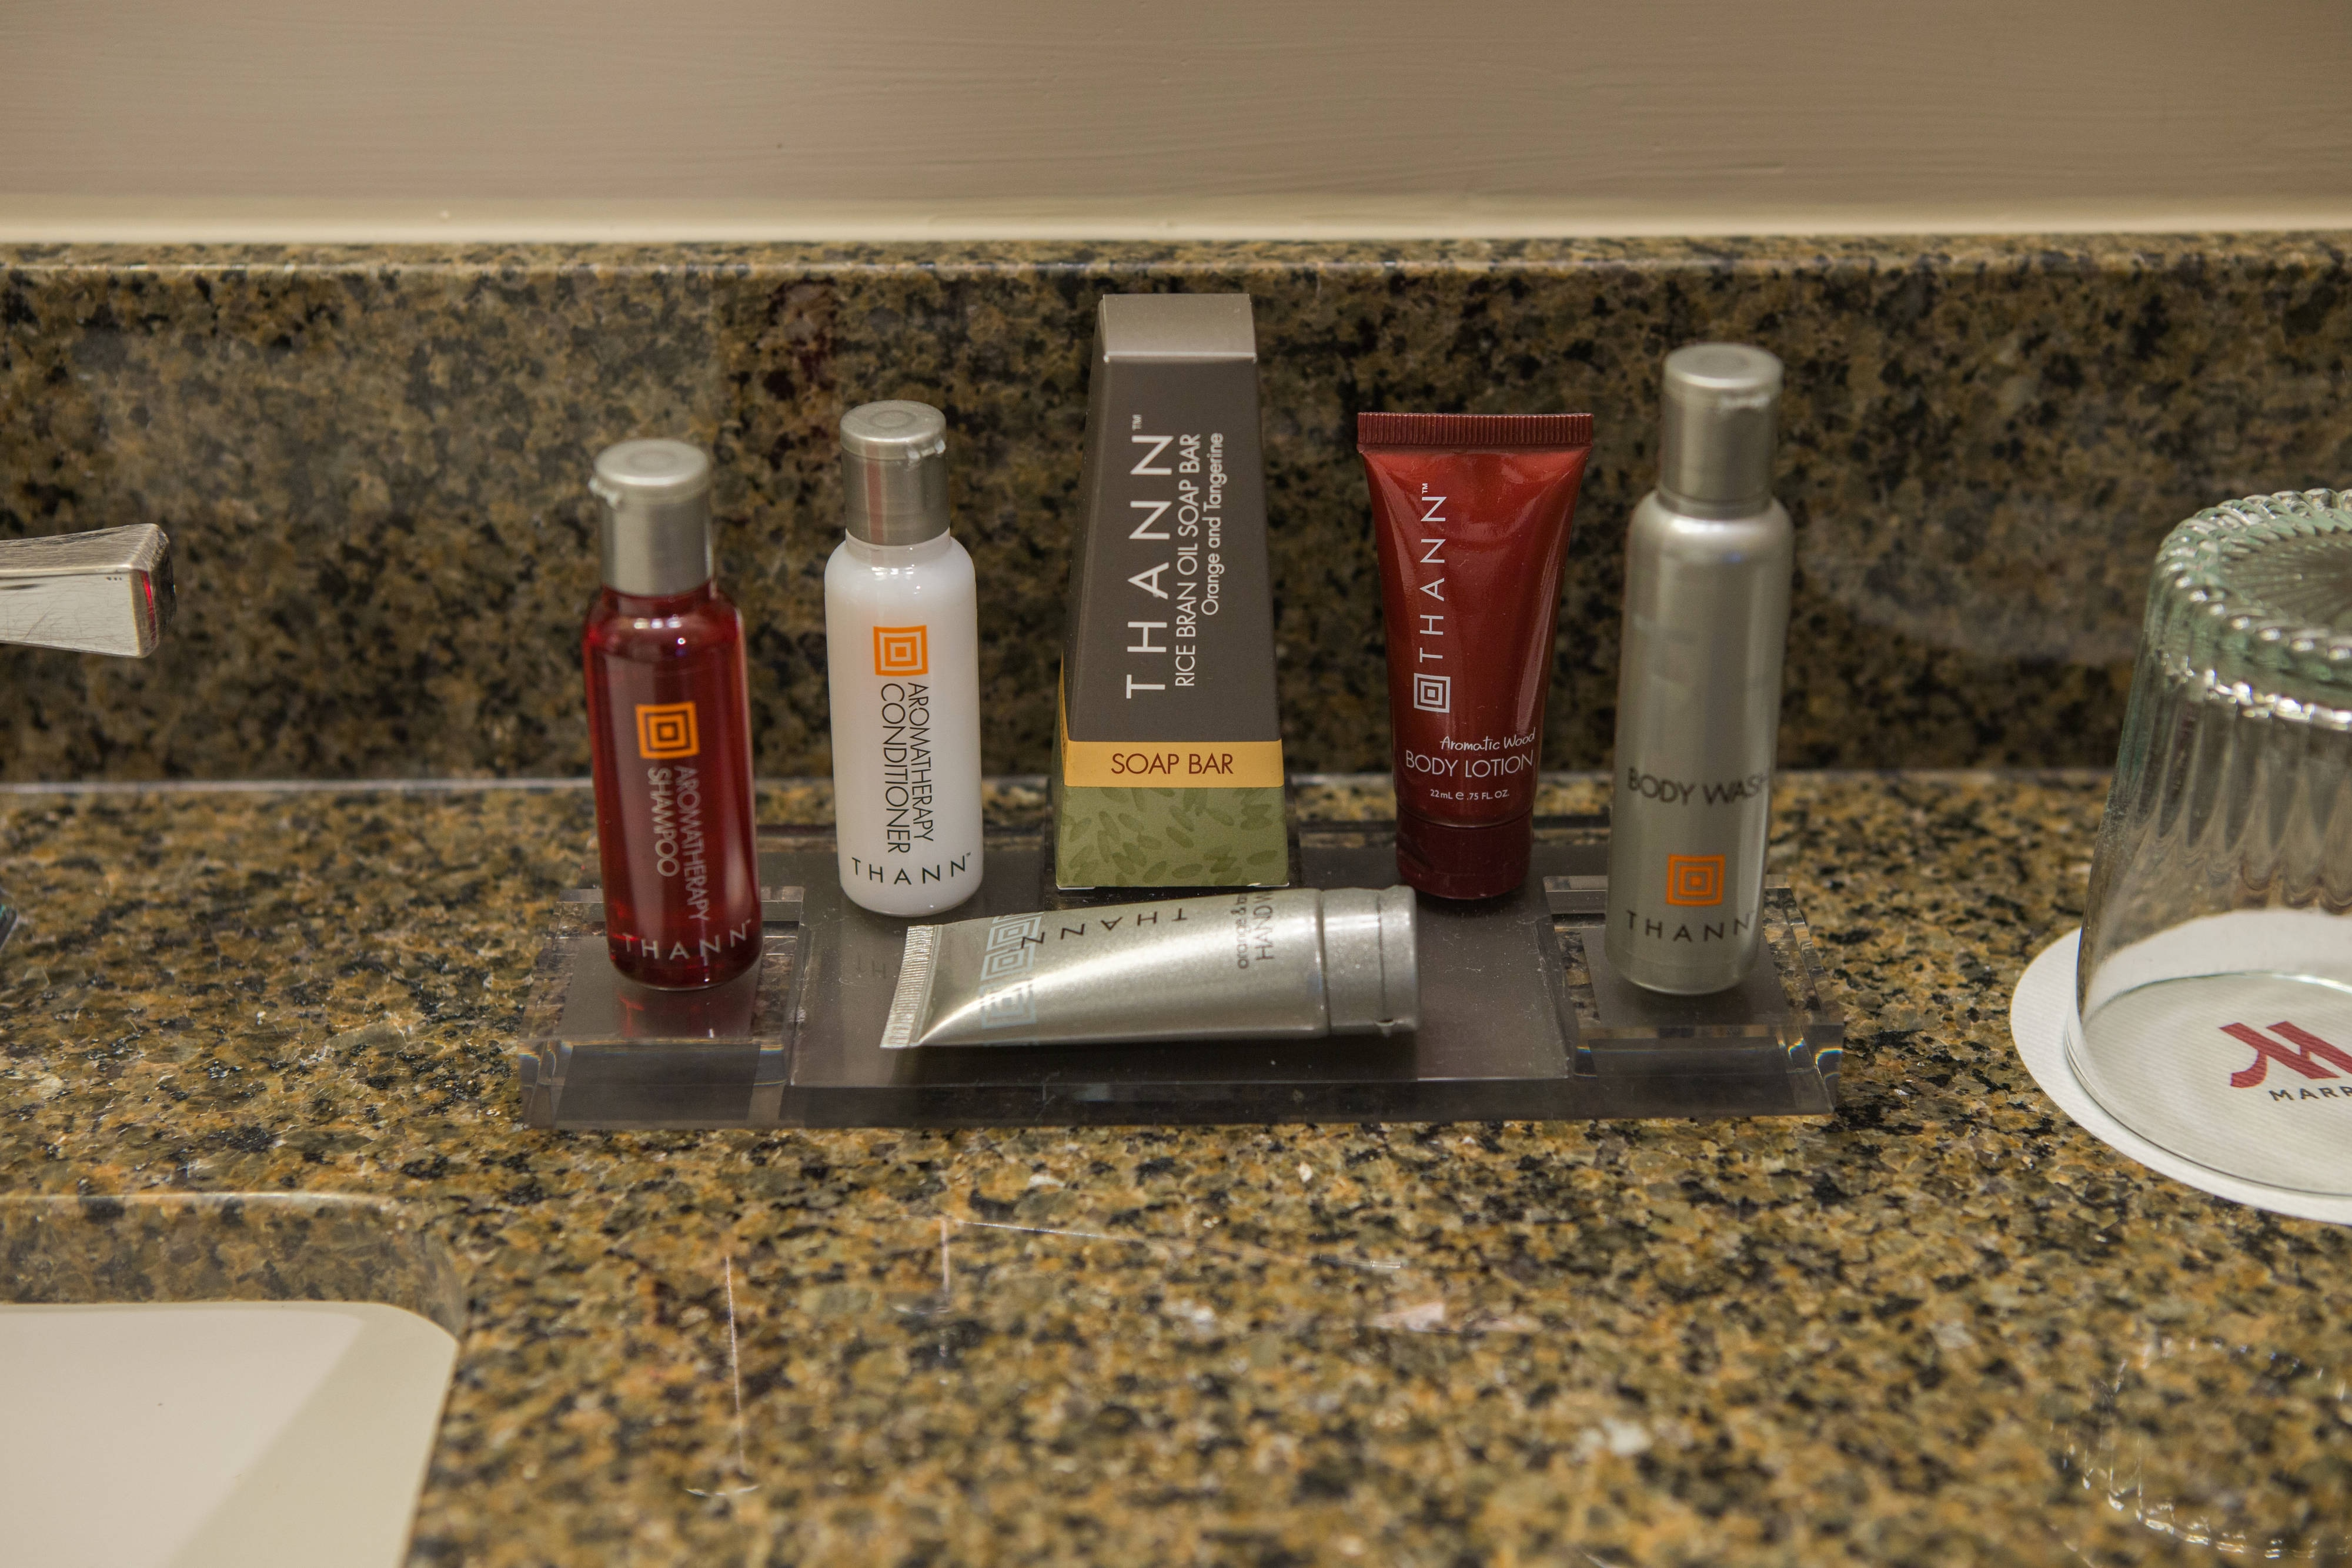 Falls Church Marriott Guest Bathroom